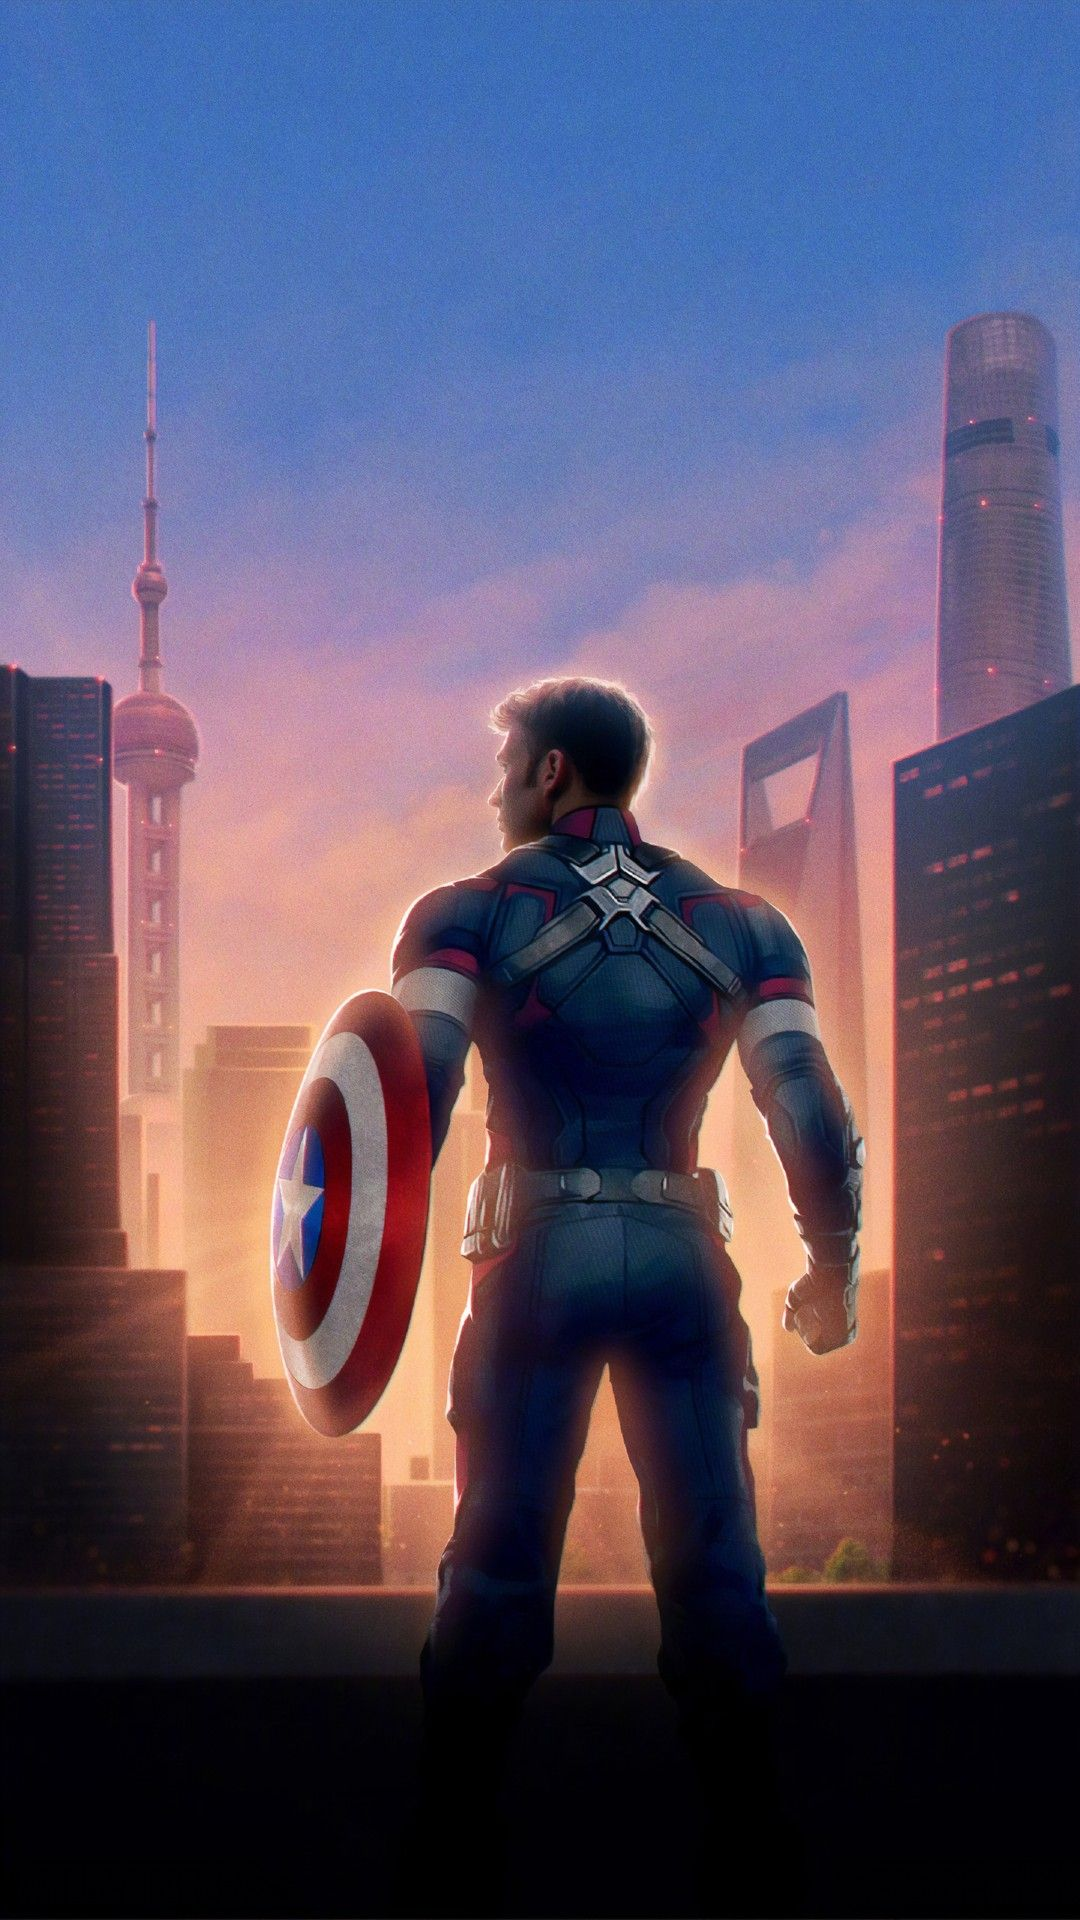 Captain America End Game Wallpaper Home Screen In 2020 Captain America Wallpaper Marvel Captain America Captain America